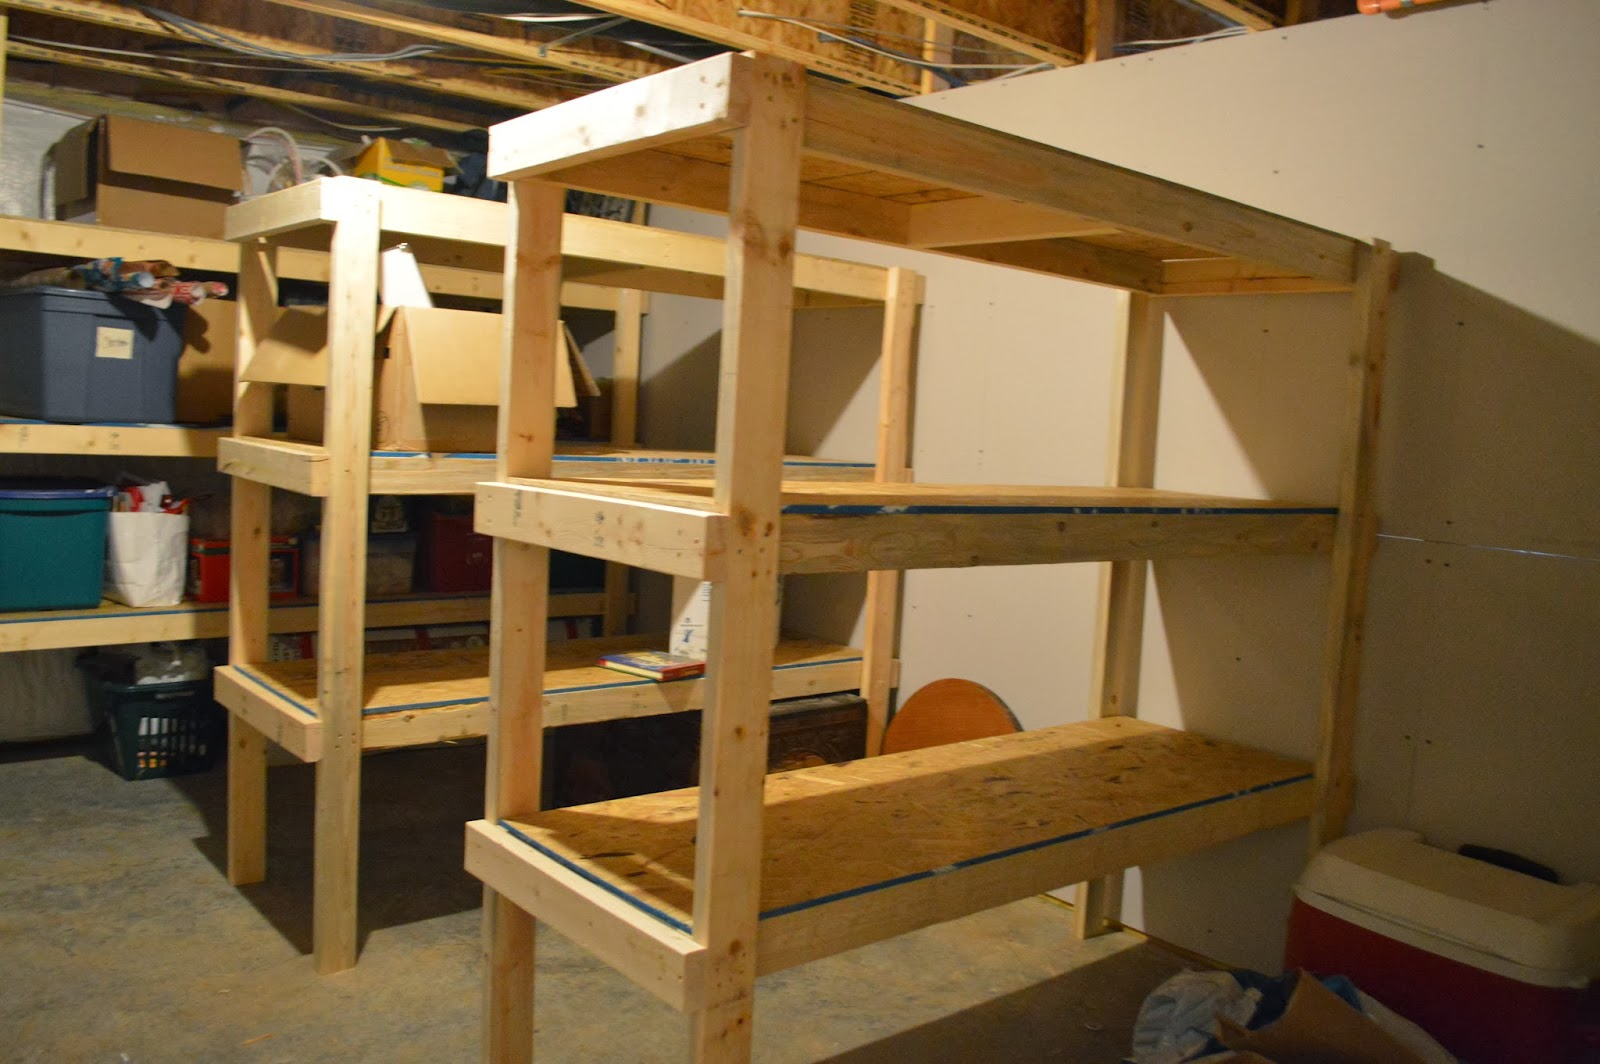 ... alley: Our Unfinished Basement Tour And How We Built Storage Shelves